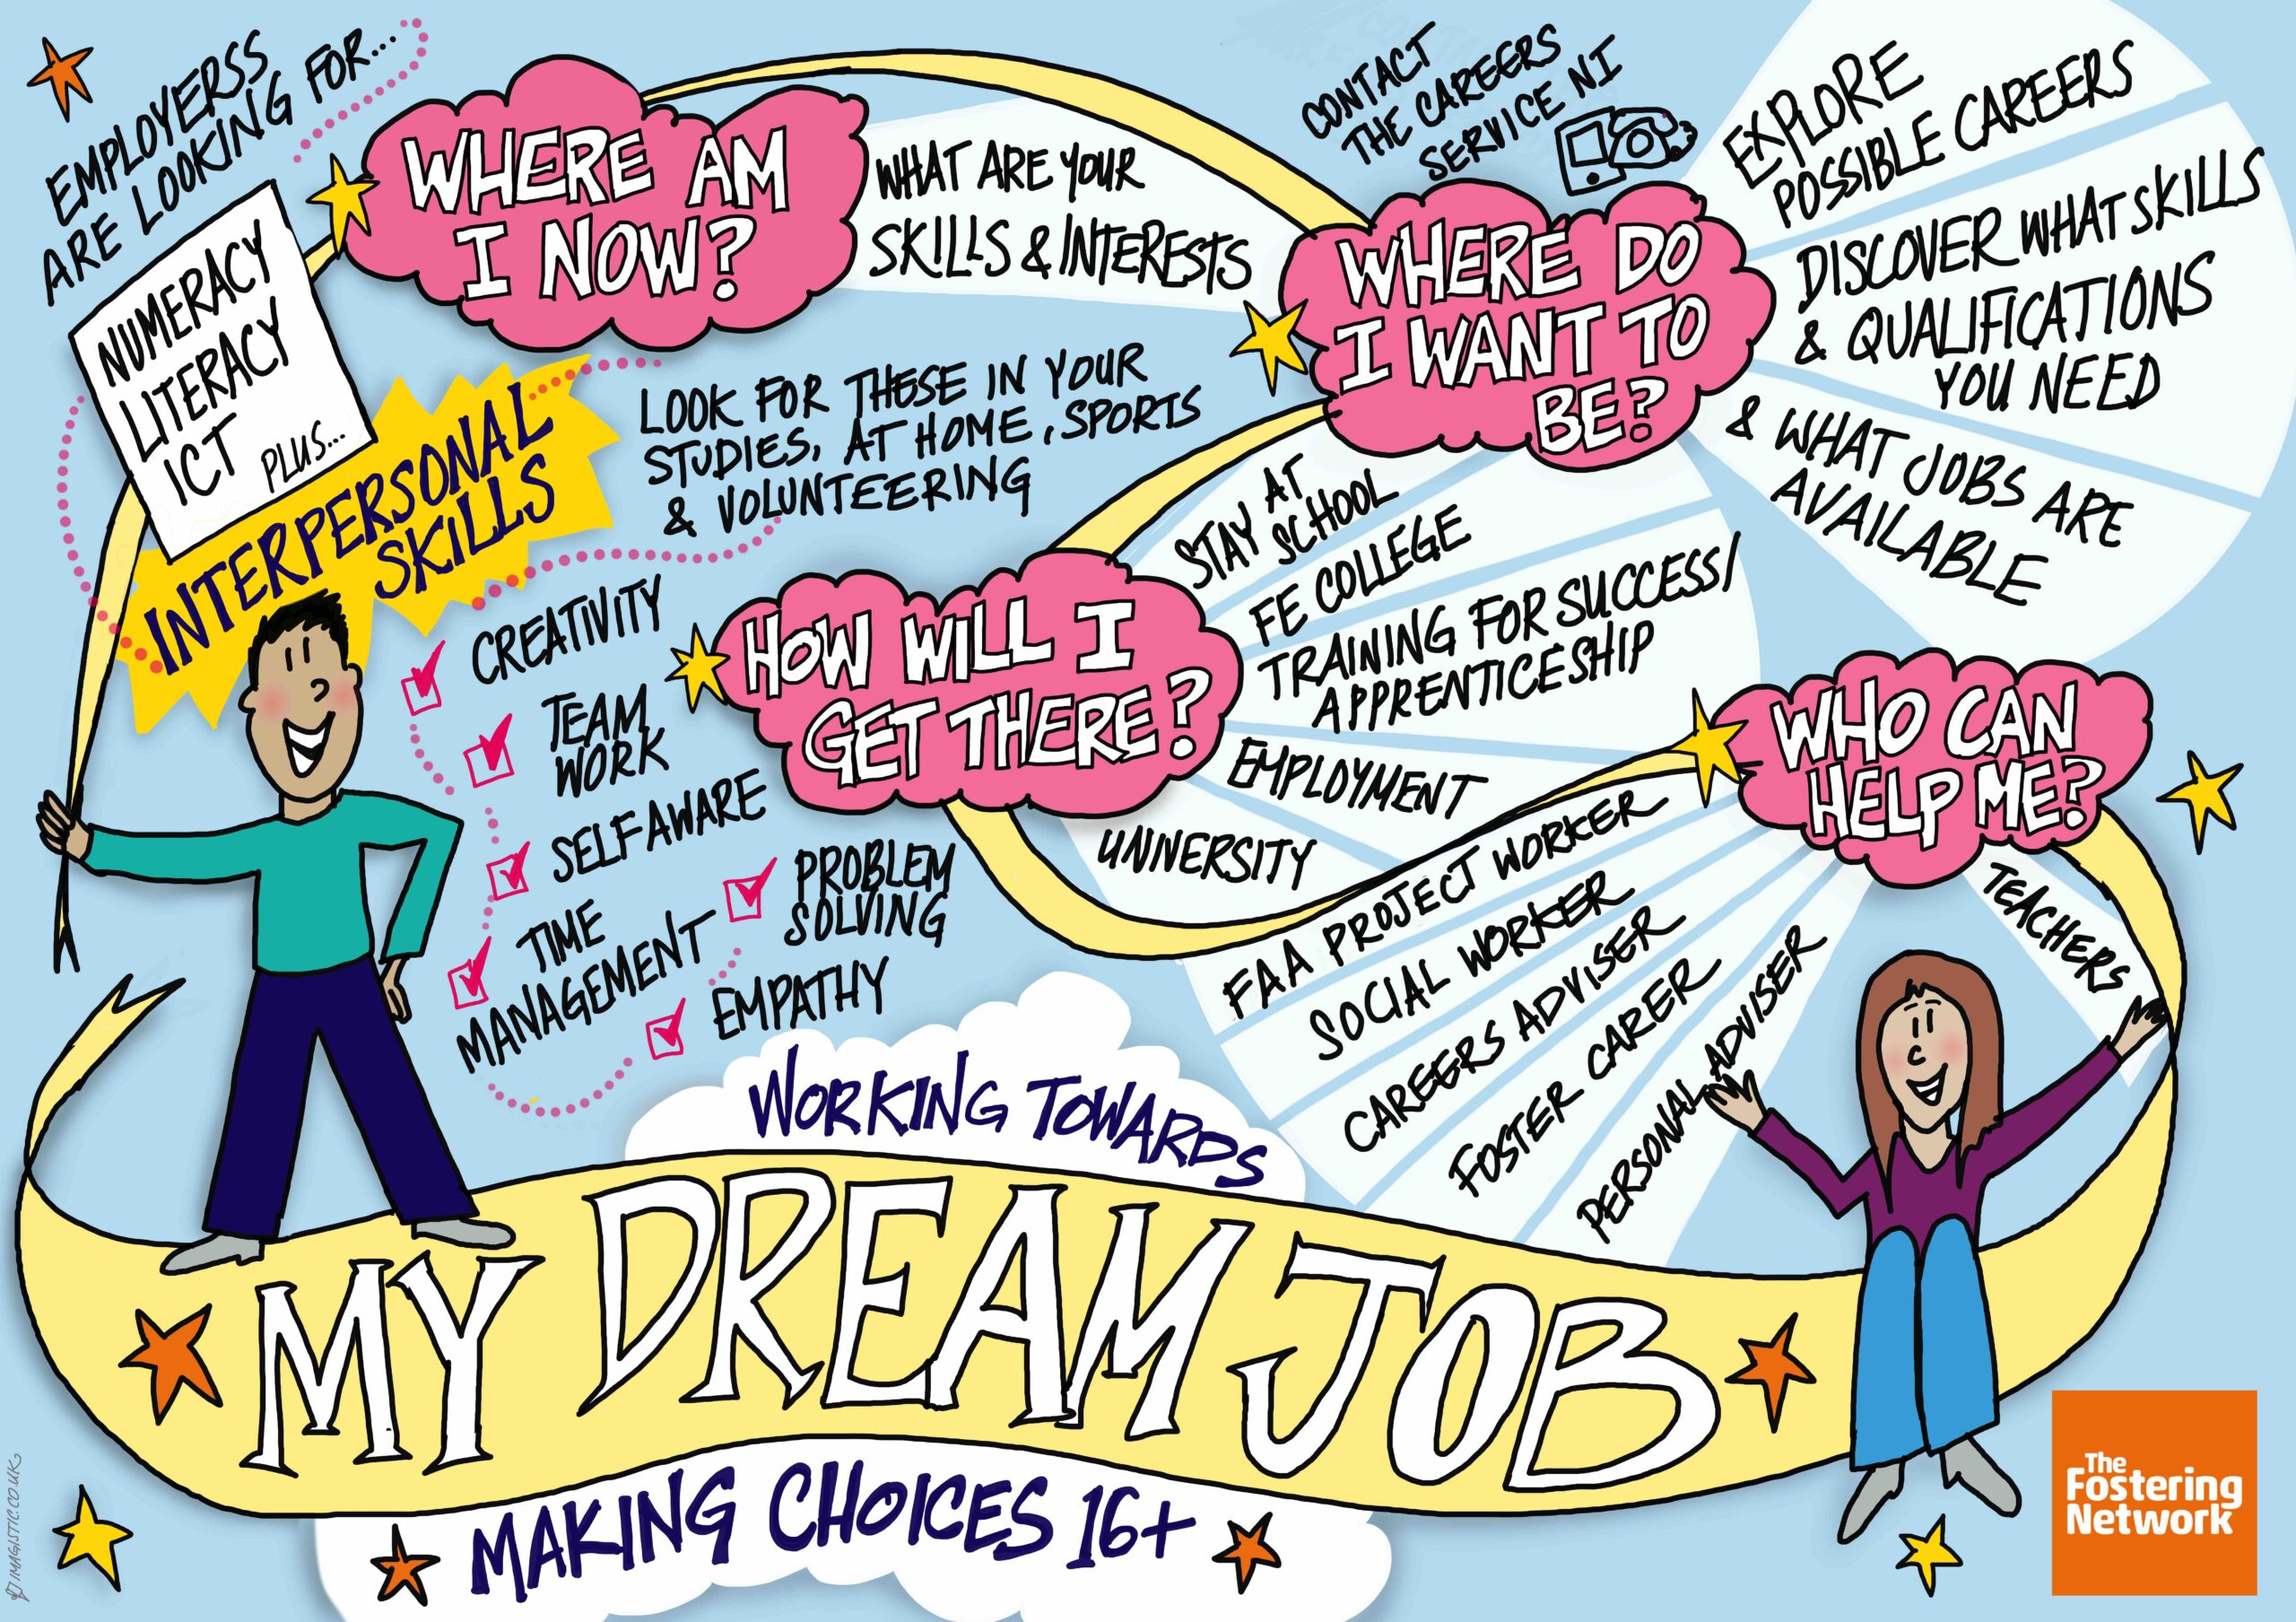 My Dream Job - Rich Picture For The Fostering Network